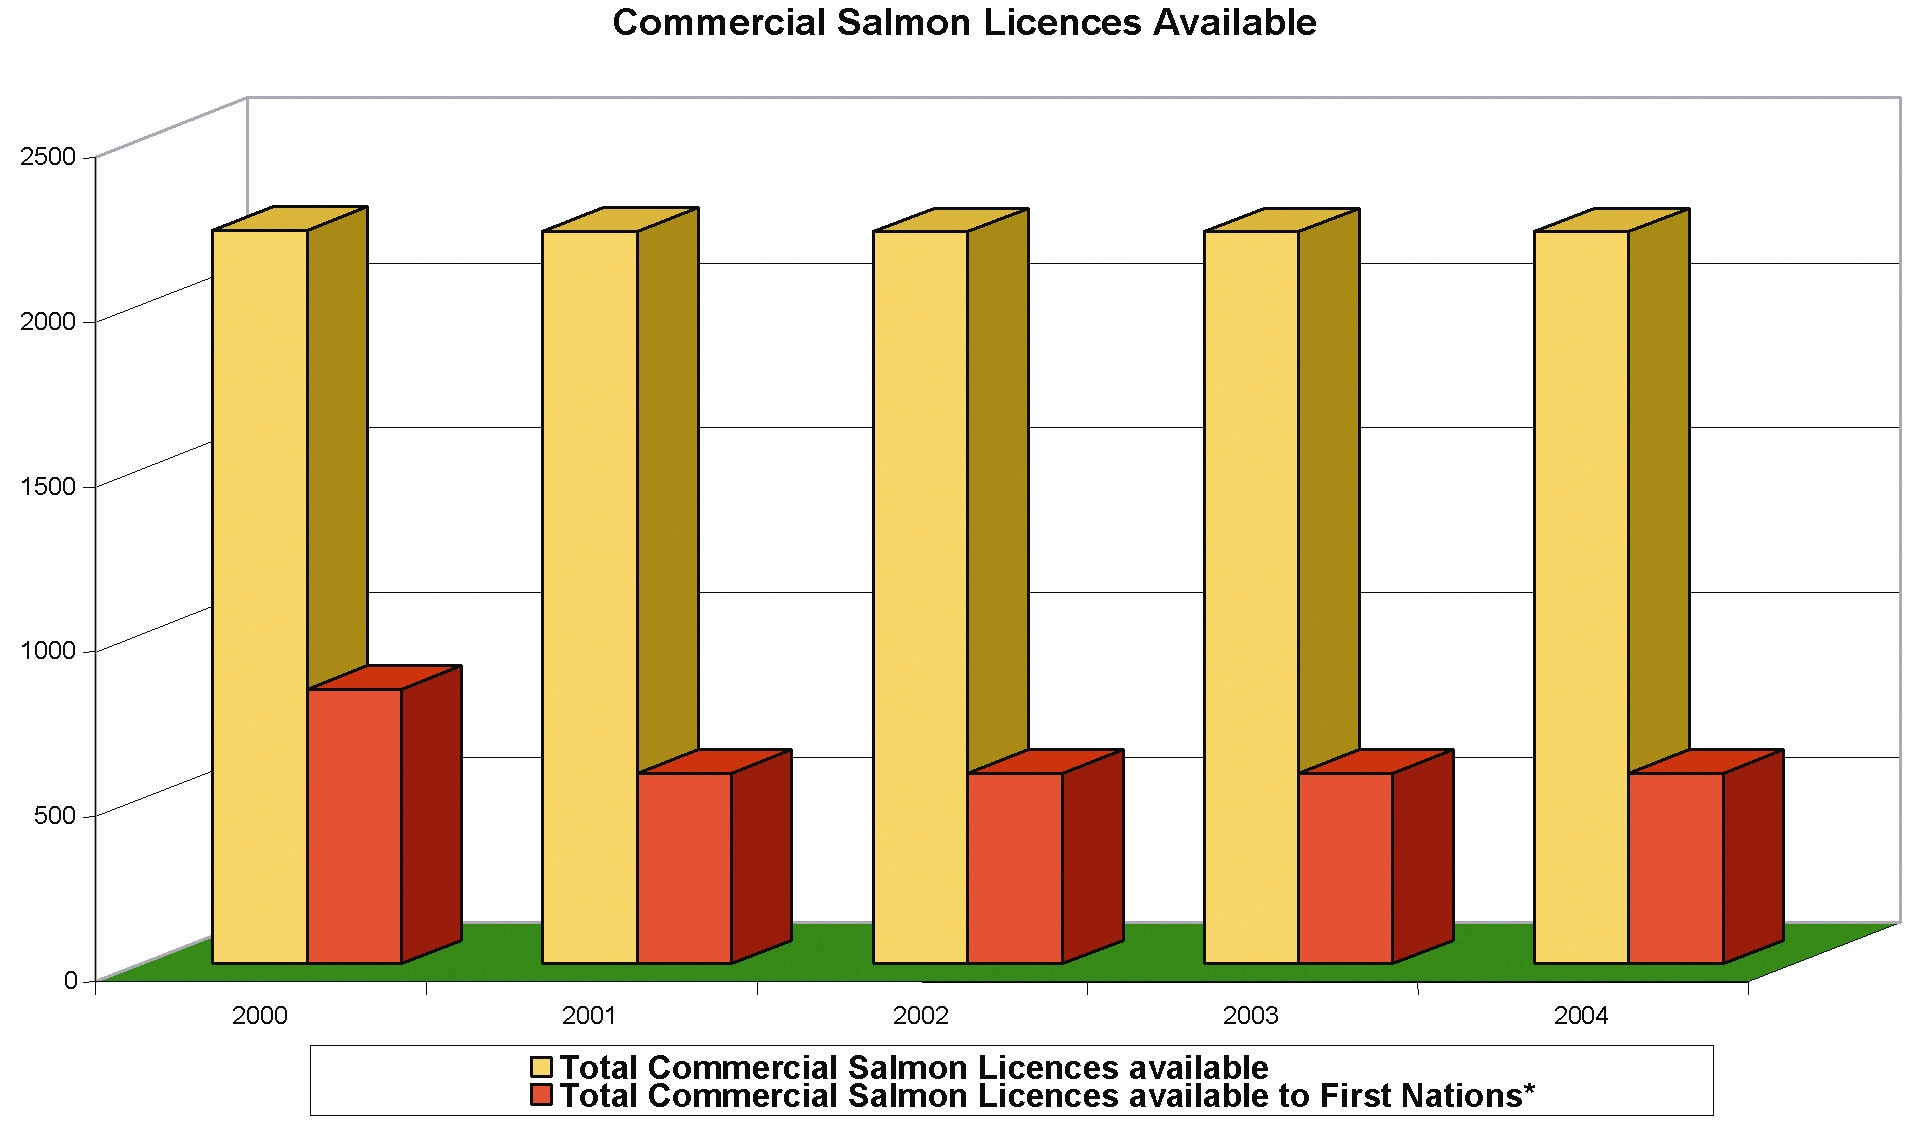 2. The Rising Commercial Salmon Fishery Figure 2. Commercial Salmon Licences Available Source data: www.pac.dfo-mpo.gc.